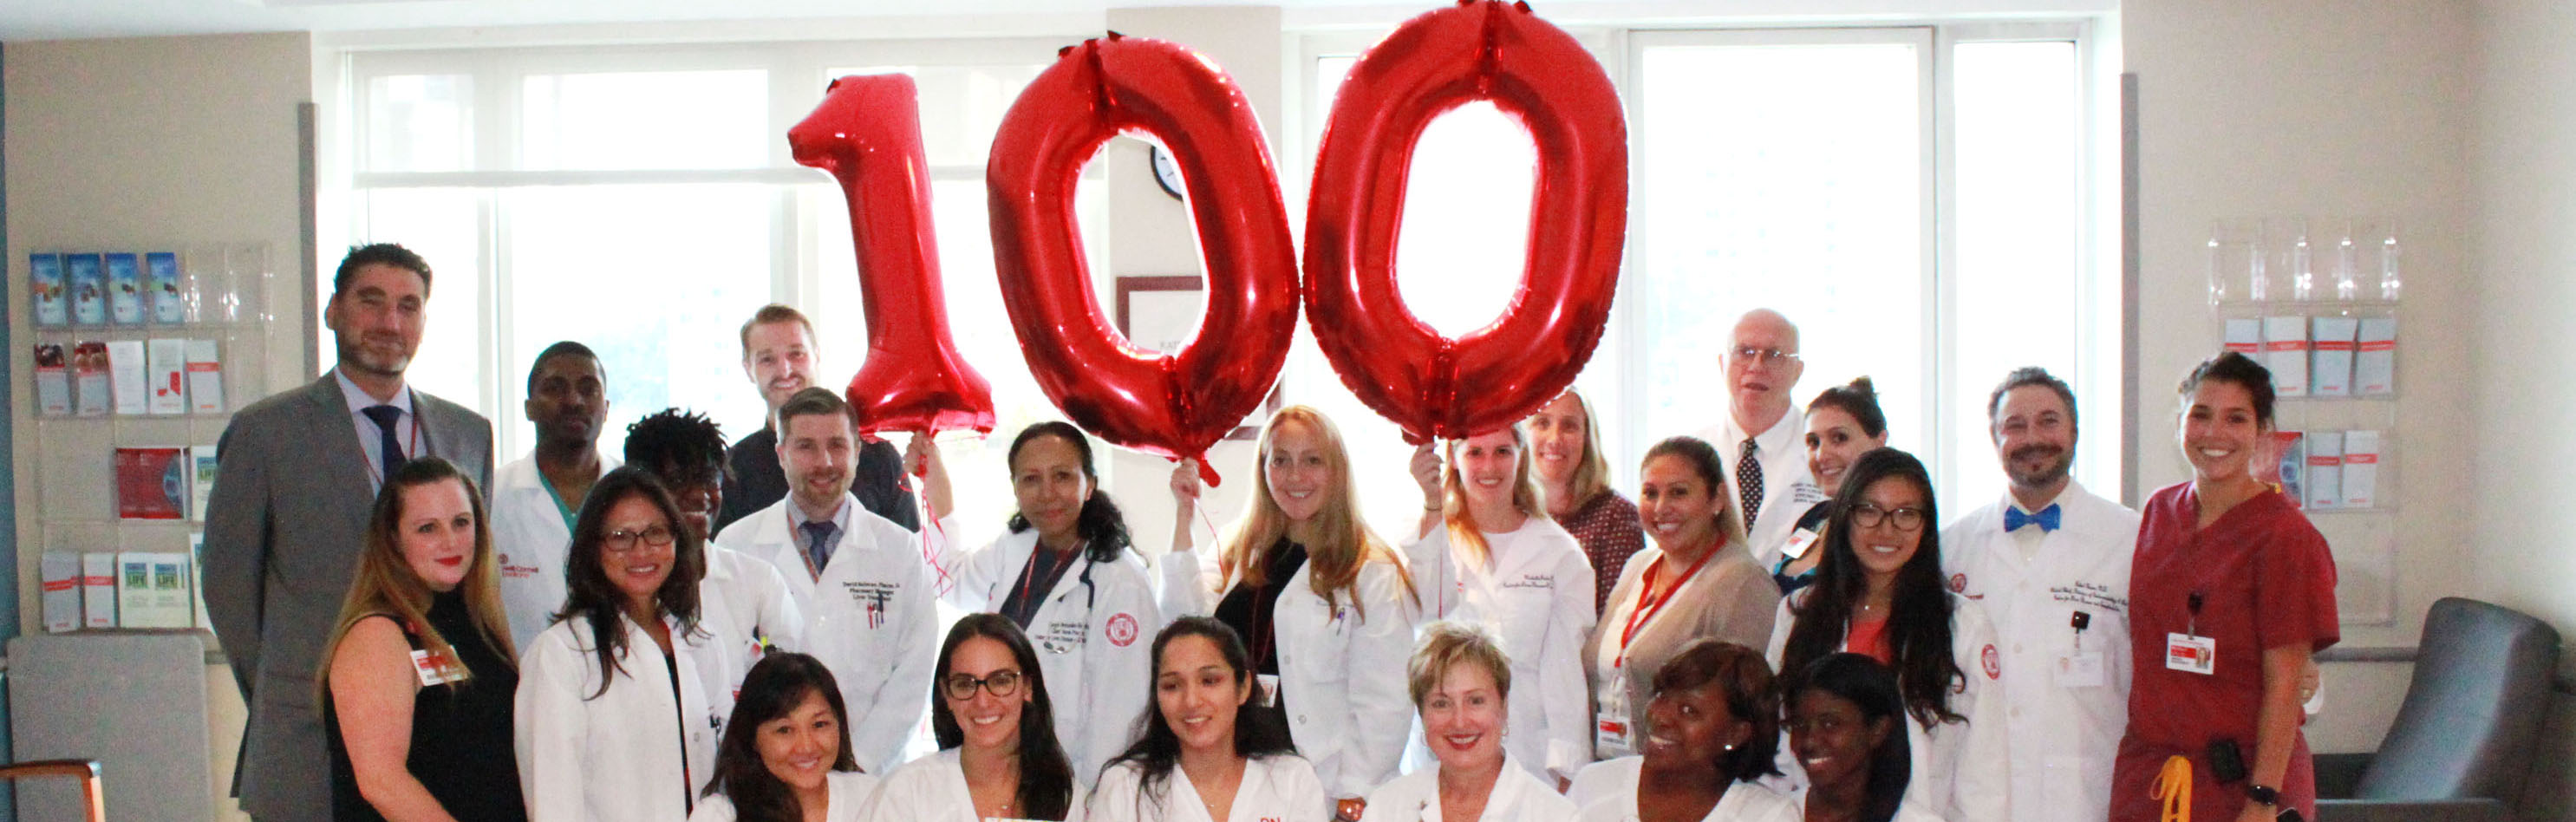 Physicians and staff of the Living Donor Liver Transplantation Program at Weill Cornell Medicine celebrate their 100th transplant.